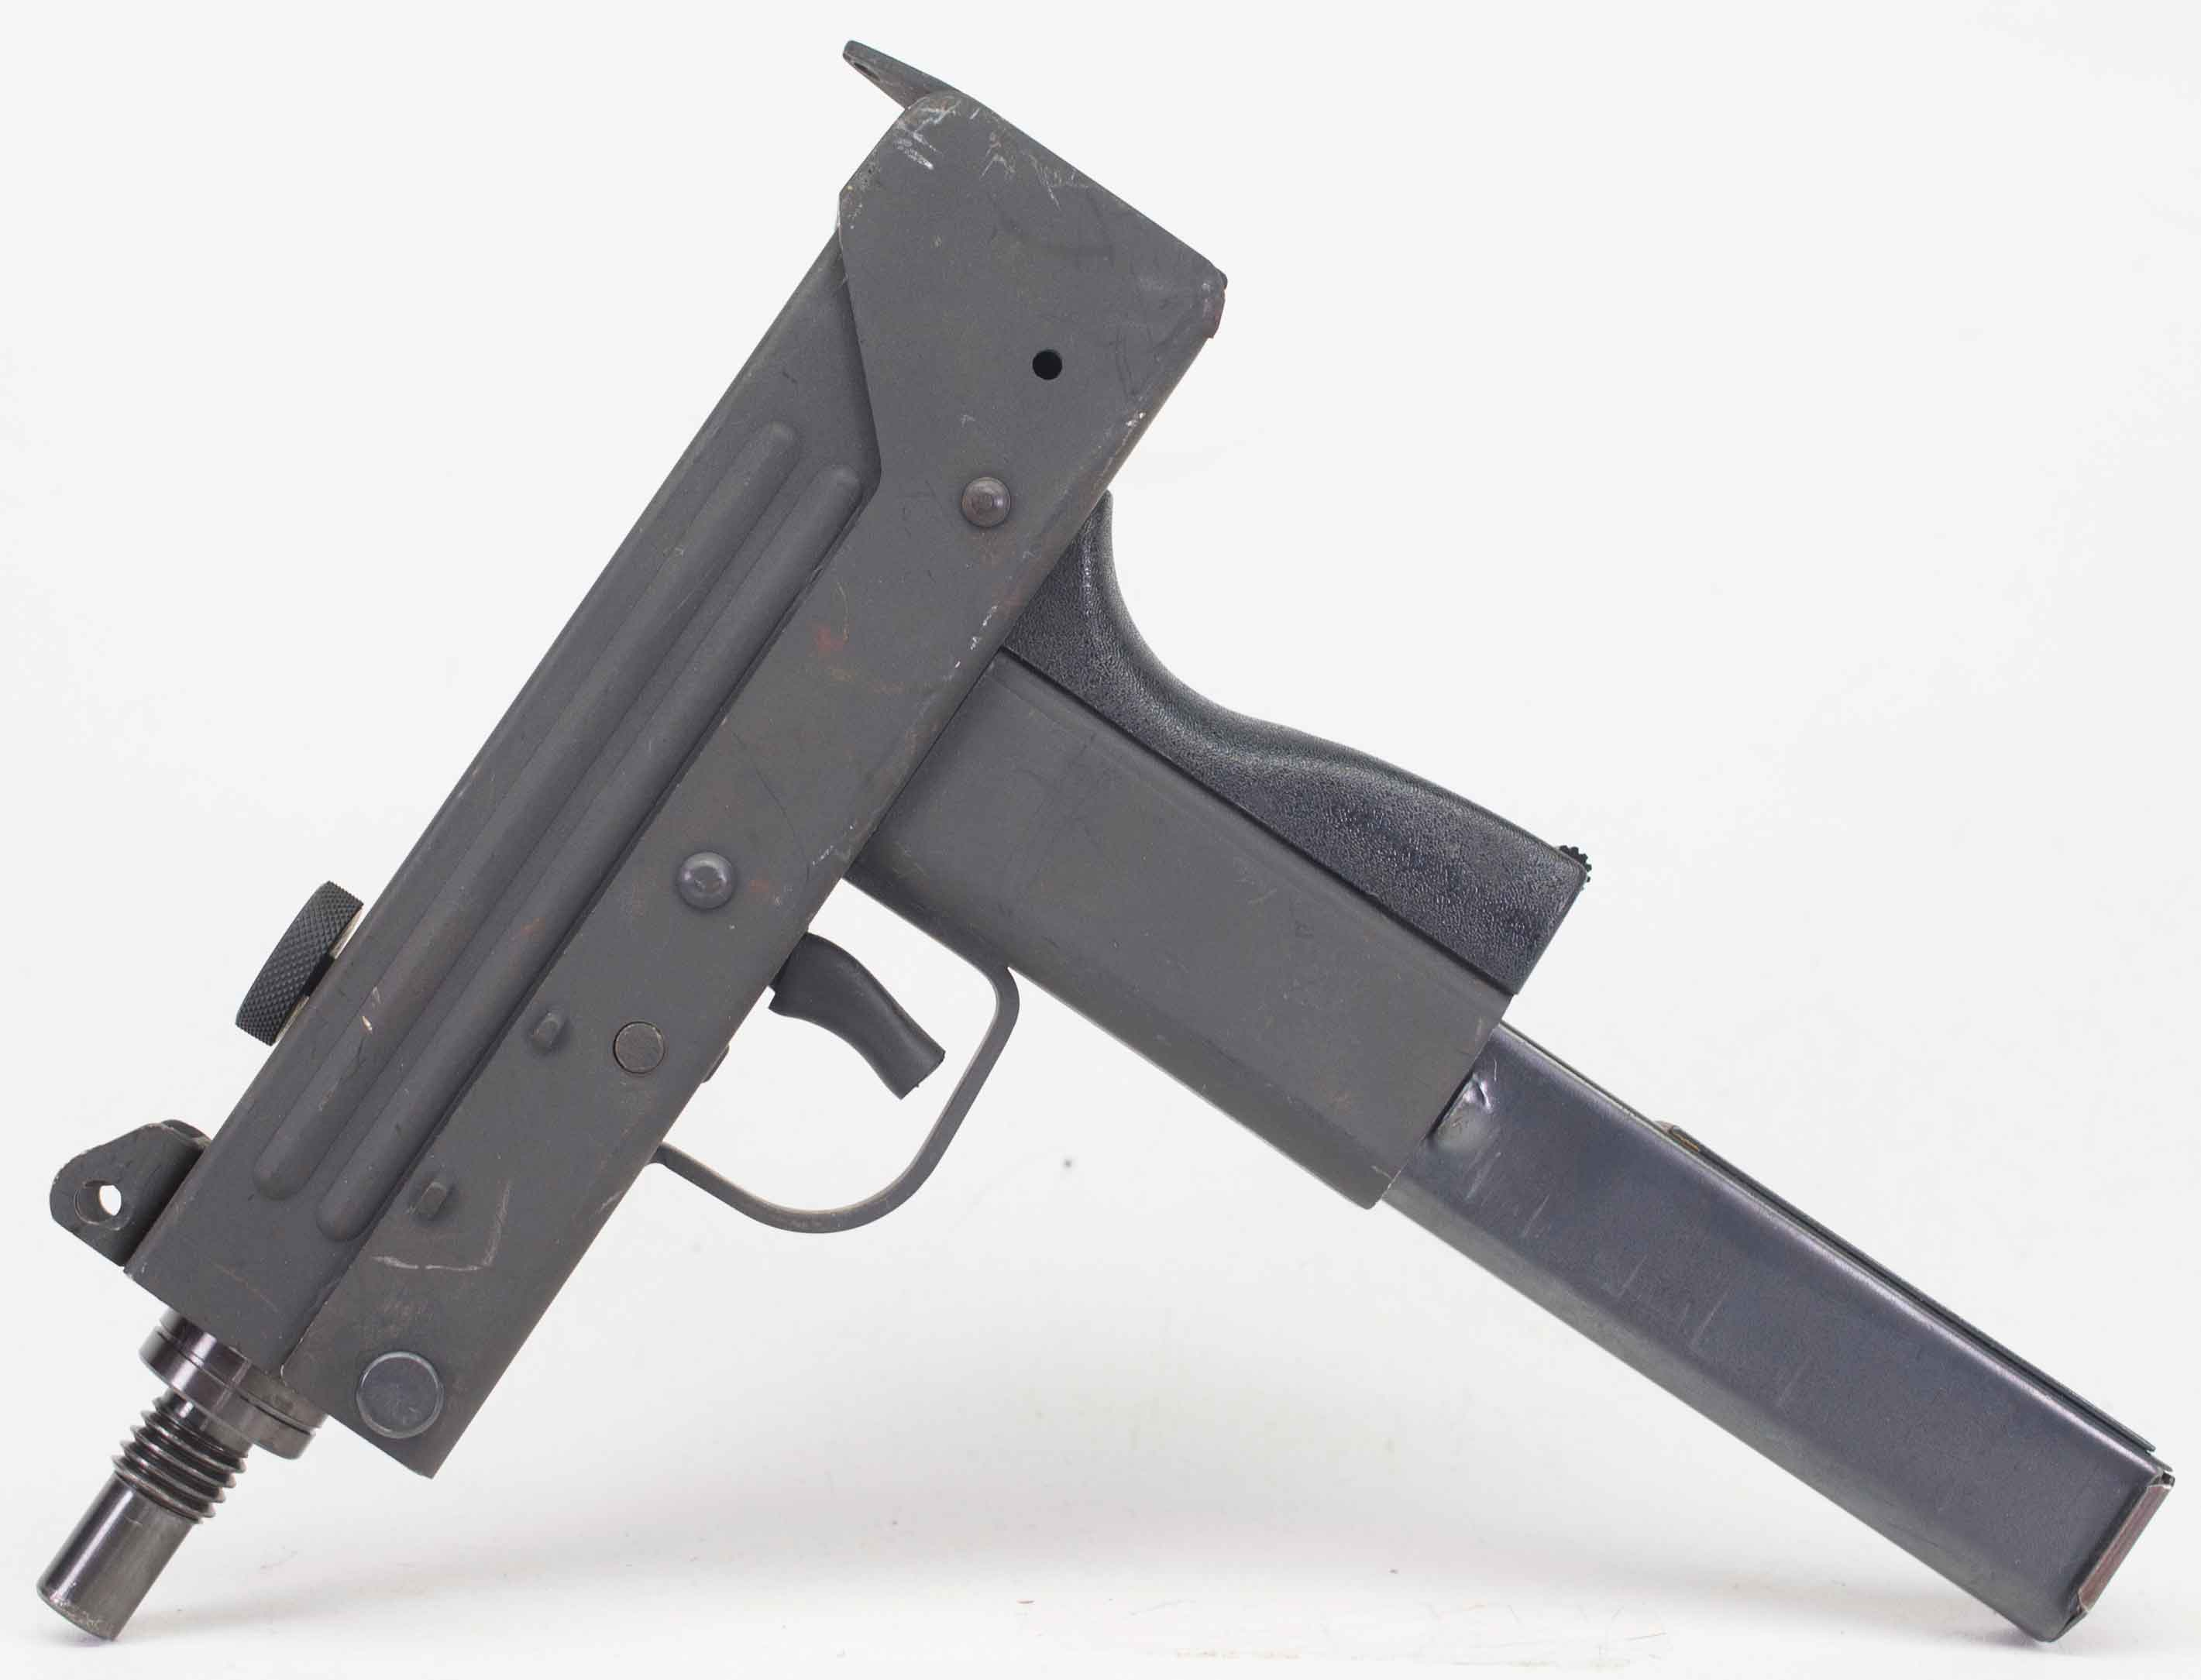 COBRAY M12 380ACP (Auction ID: 11312395, End Time : May  06